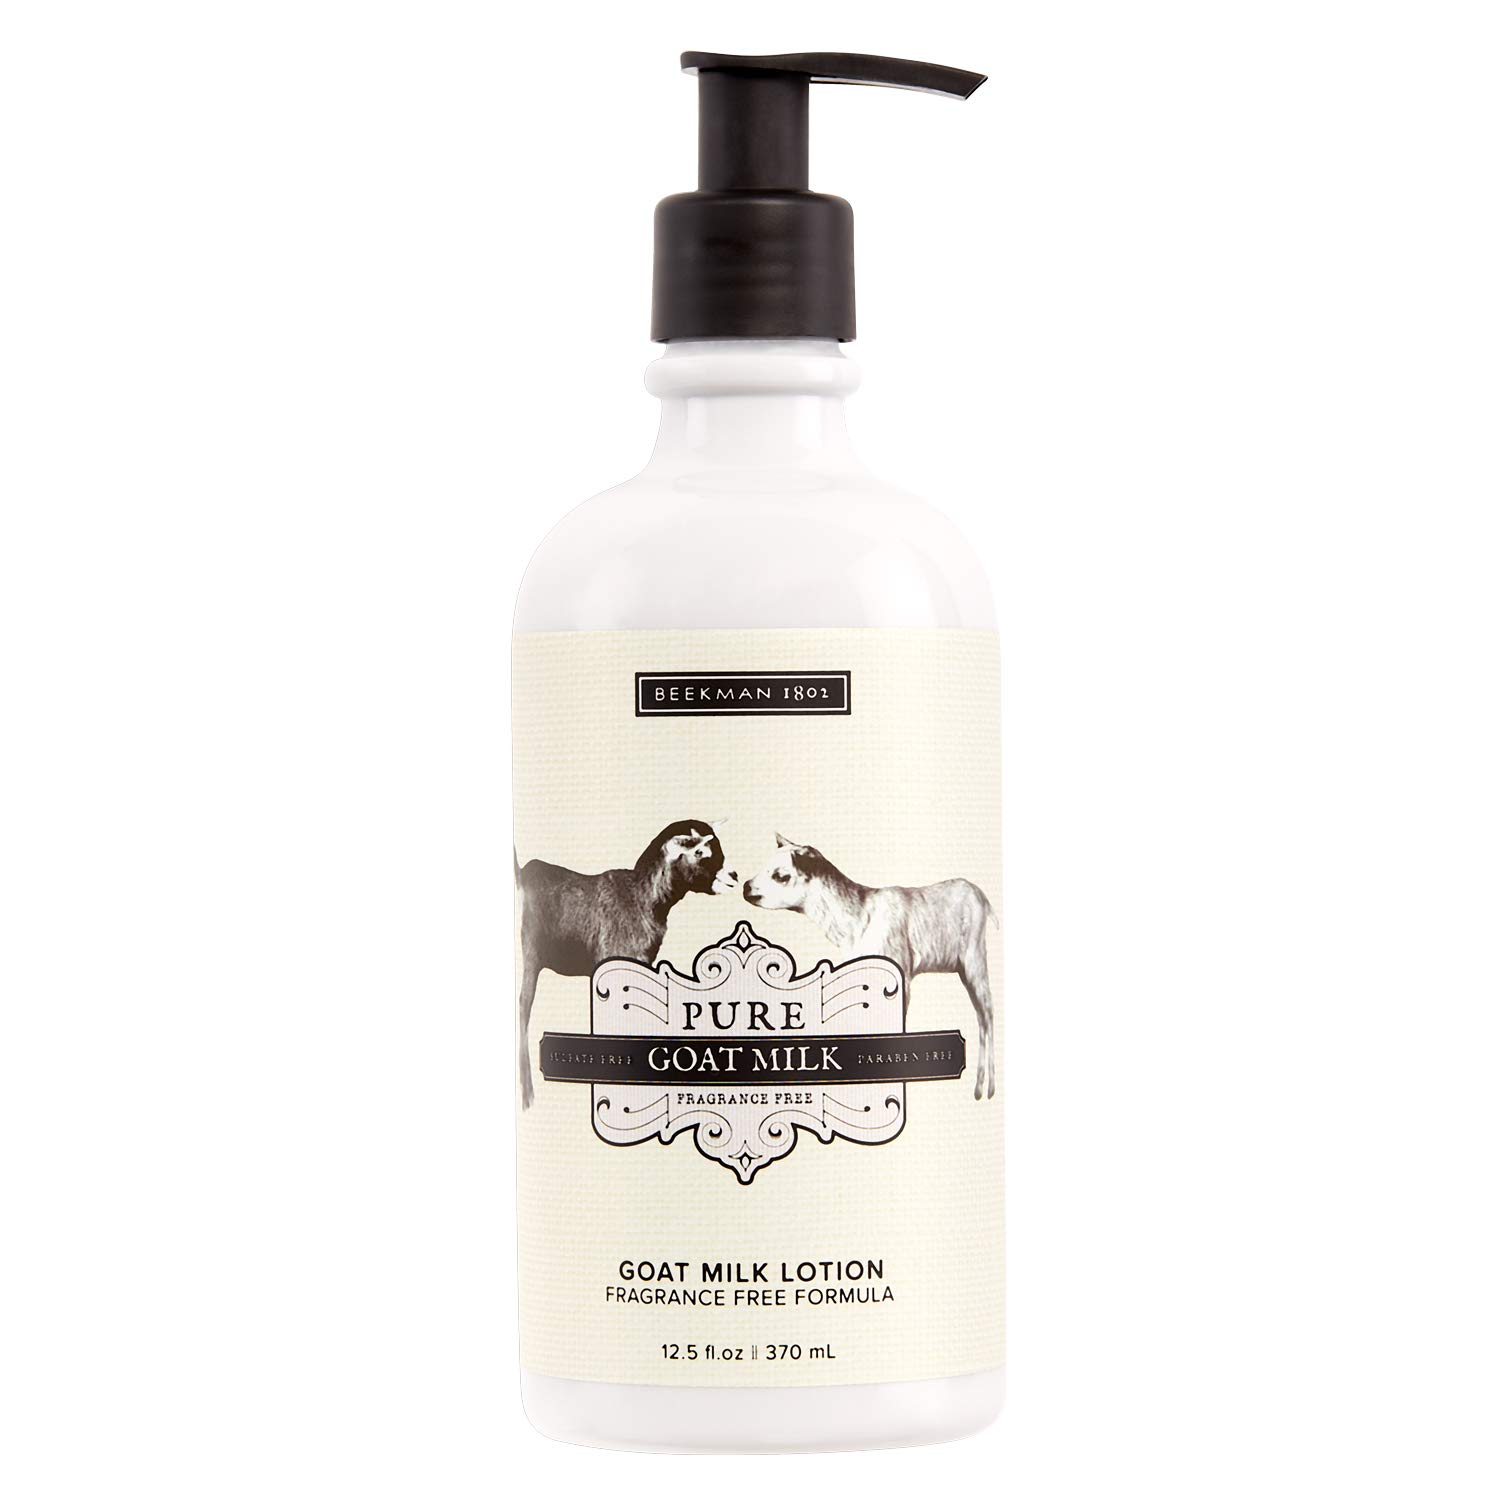 Beekman 1802 - Goat Milk Lotion - Pure Goat Milk - Fragrance-Free Hydrating Goat Milk Lotion for Whole-Body - Cruelty-Free Goat Milk Bodycare - 12.5 oz